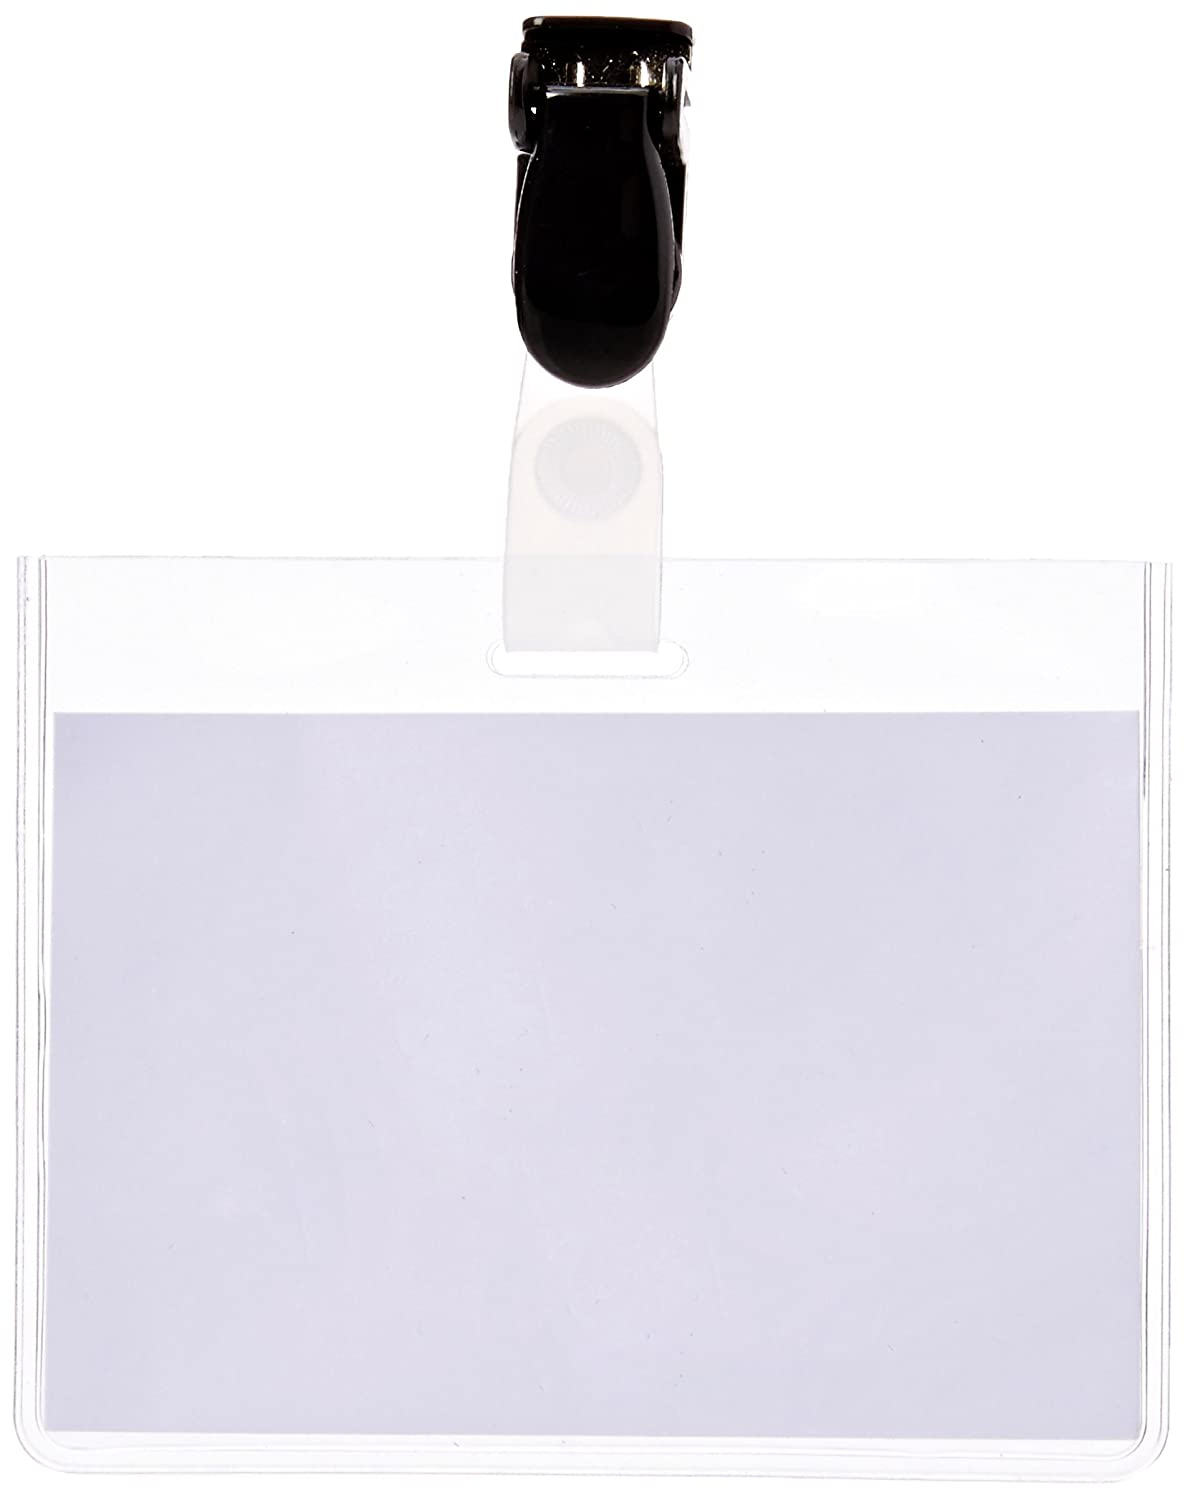 Pack of 25 Announce 60 x 90 mm Security Name Badge